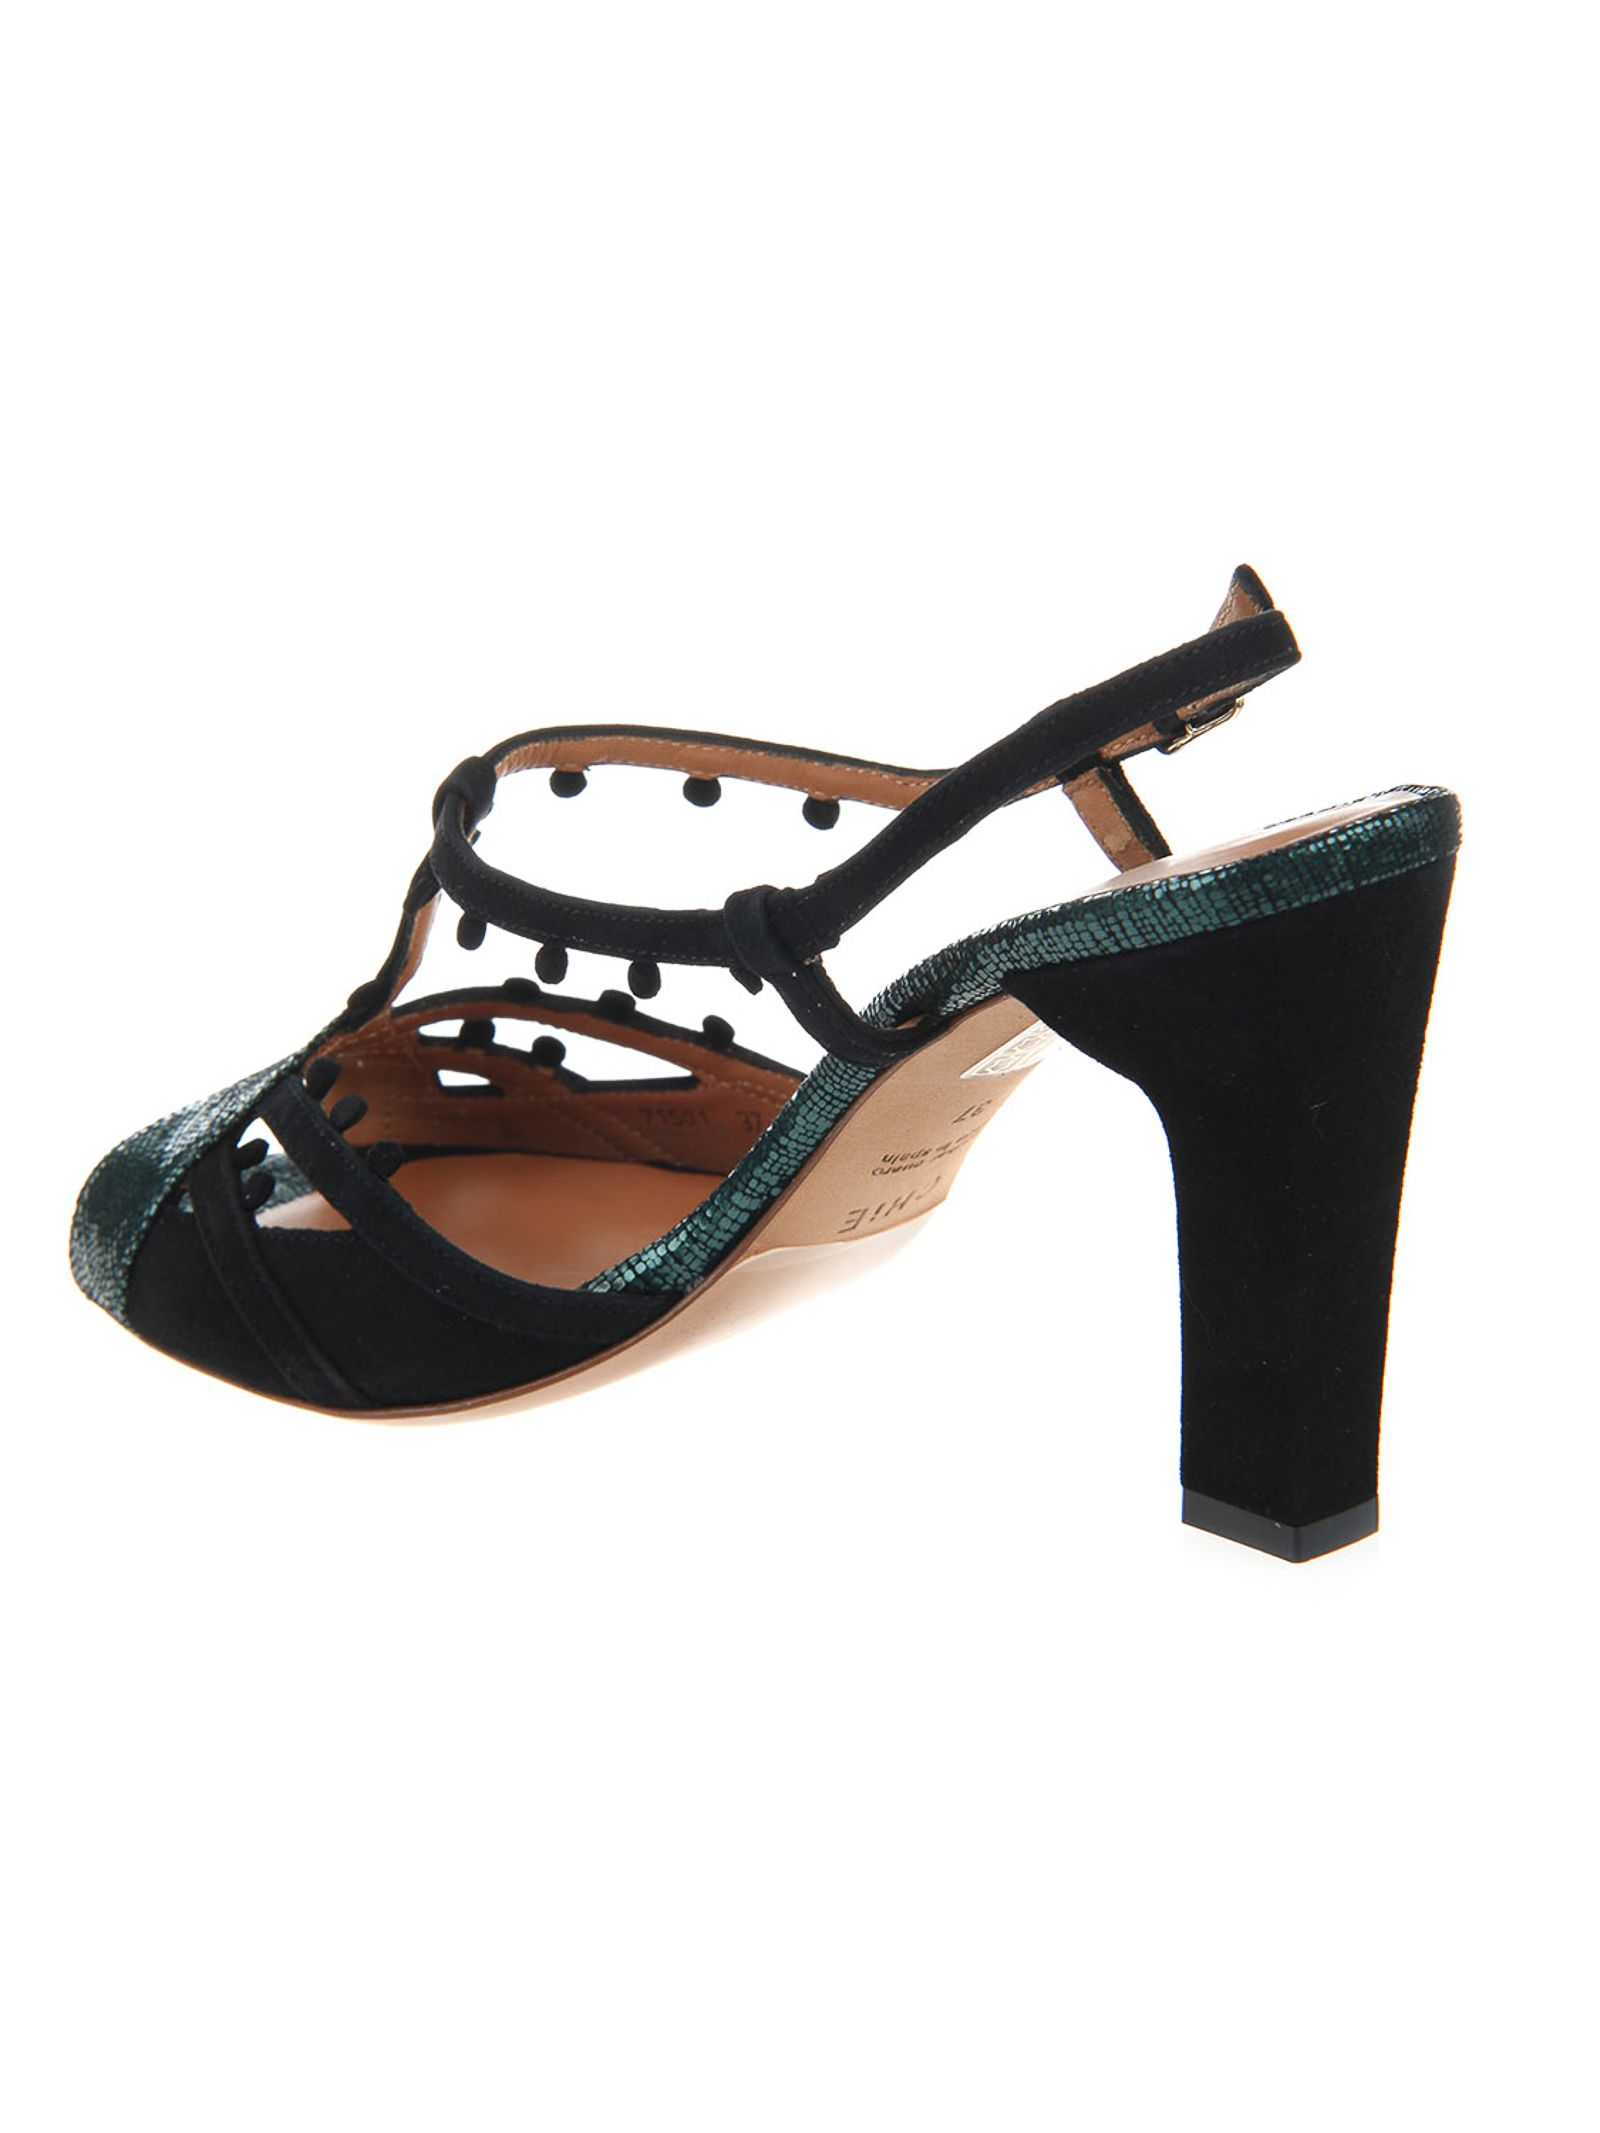 Buy Cheap Pay With Paypal Outlet Discount Authentic Chie Mihara Mihara Metallic Sandals Buy Cheap Footlocker Finishline For Sale Wholesale Price Brand New Unisex For Sale G9CC2wR